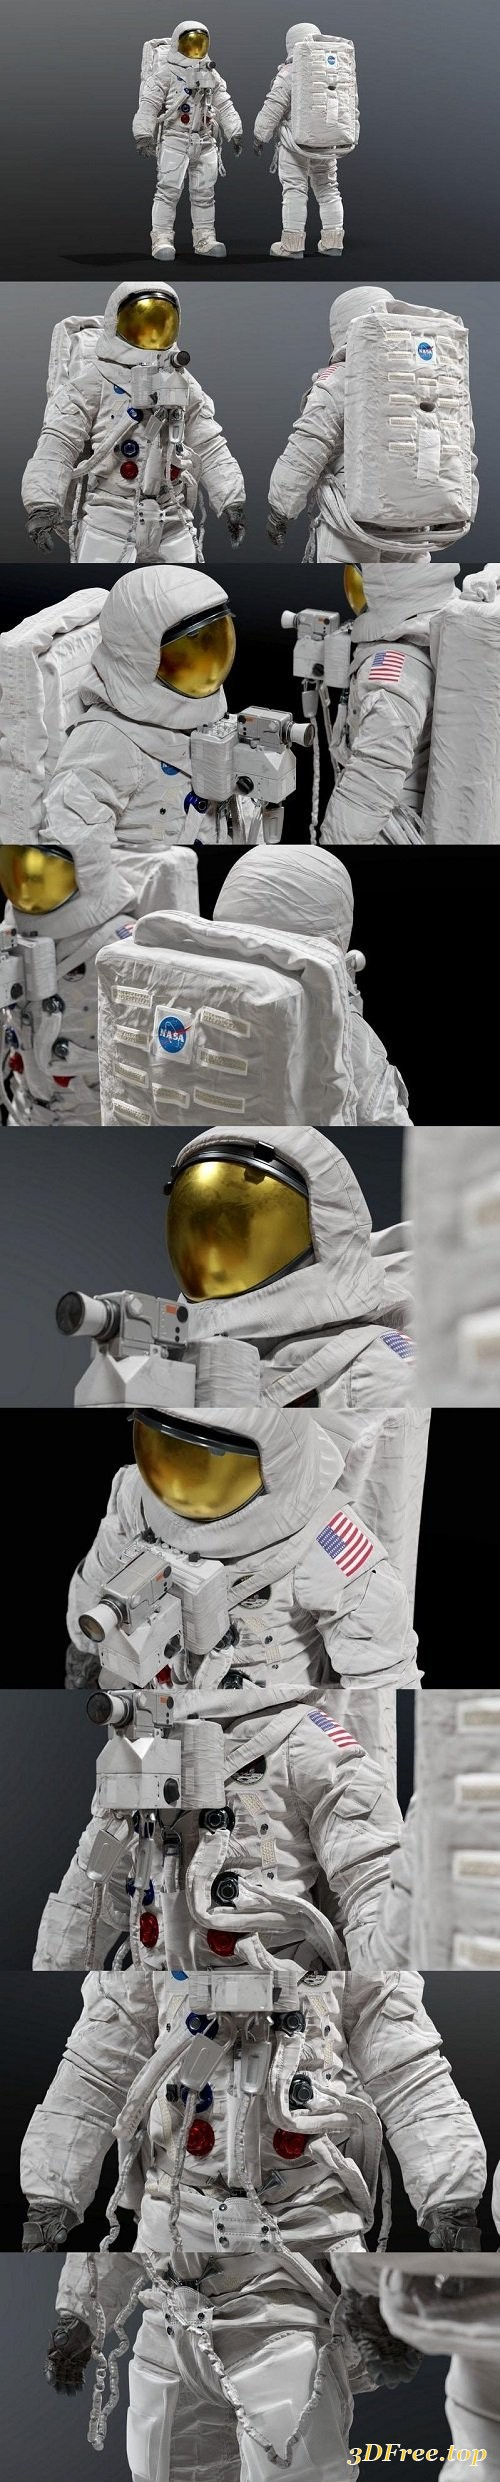 Cgtrader - SPACESUIT NASA APOLLO 11 3D model